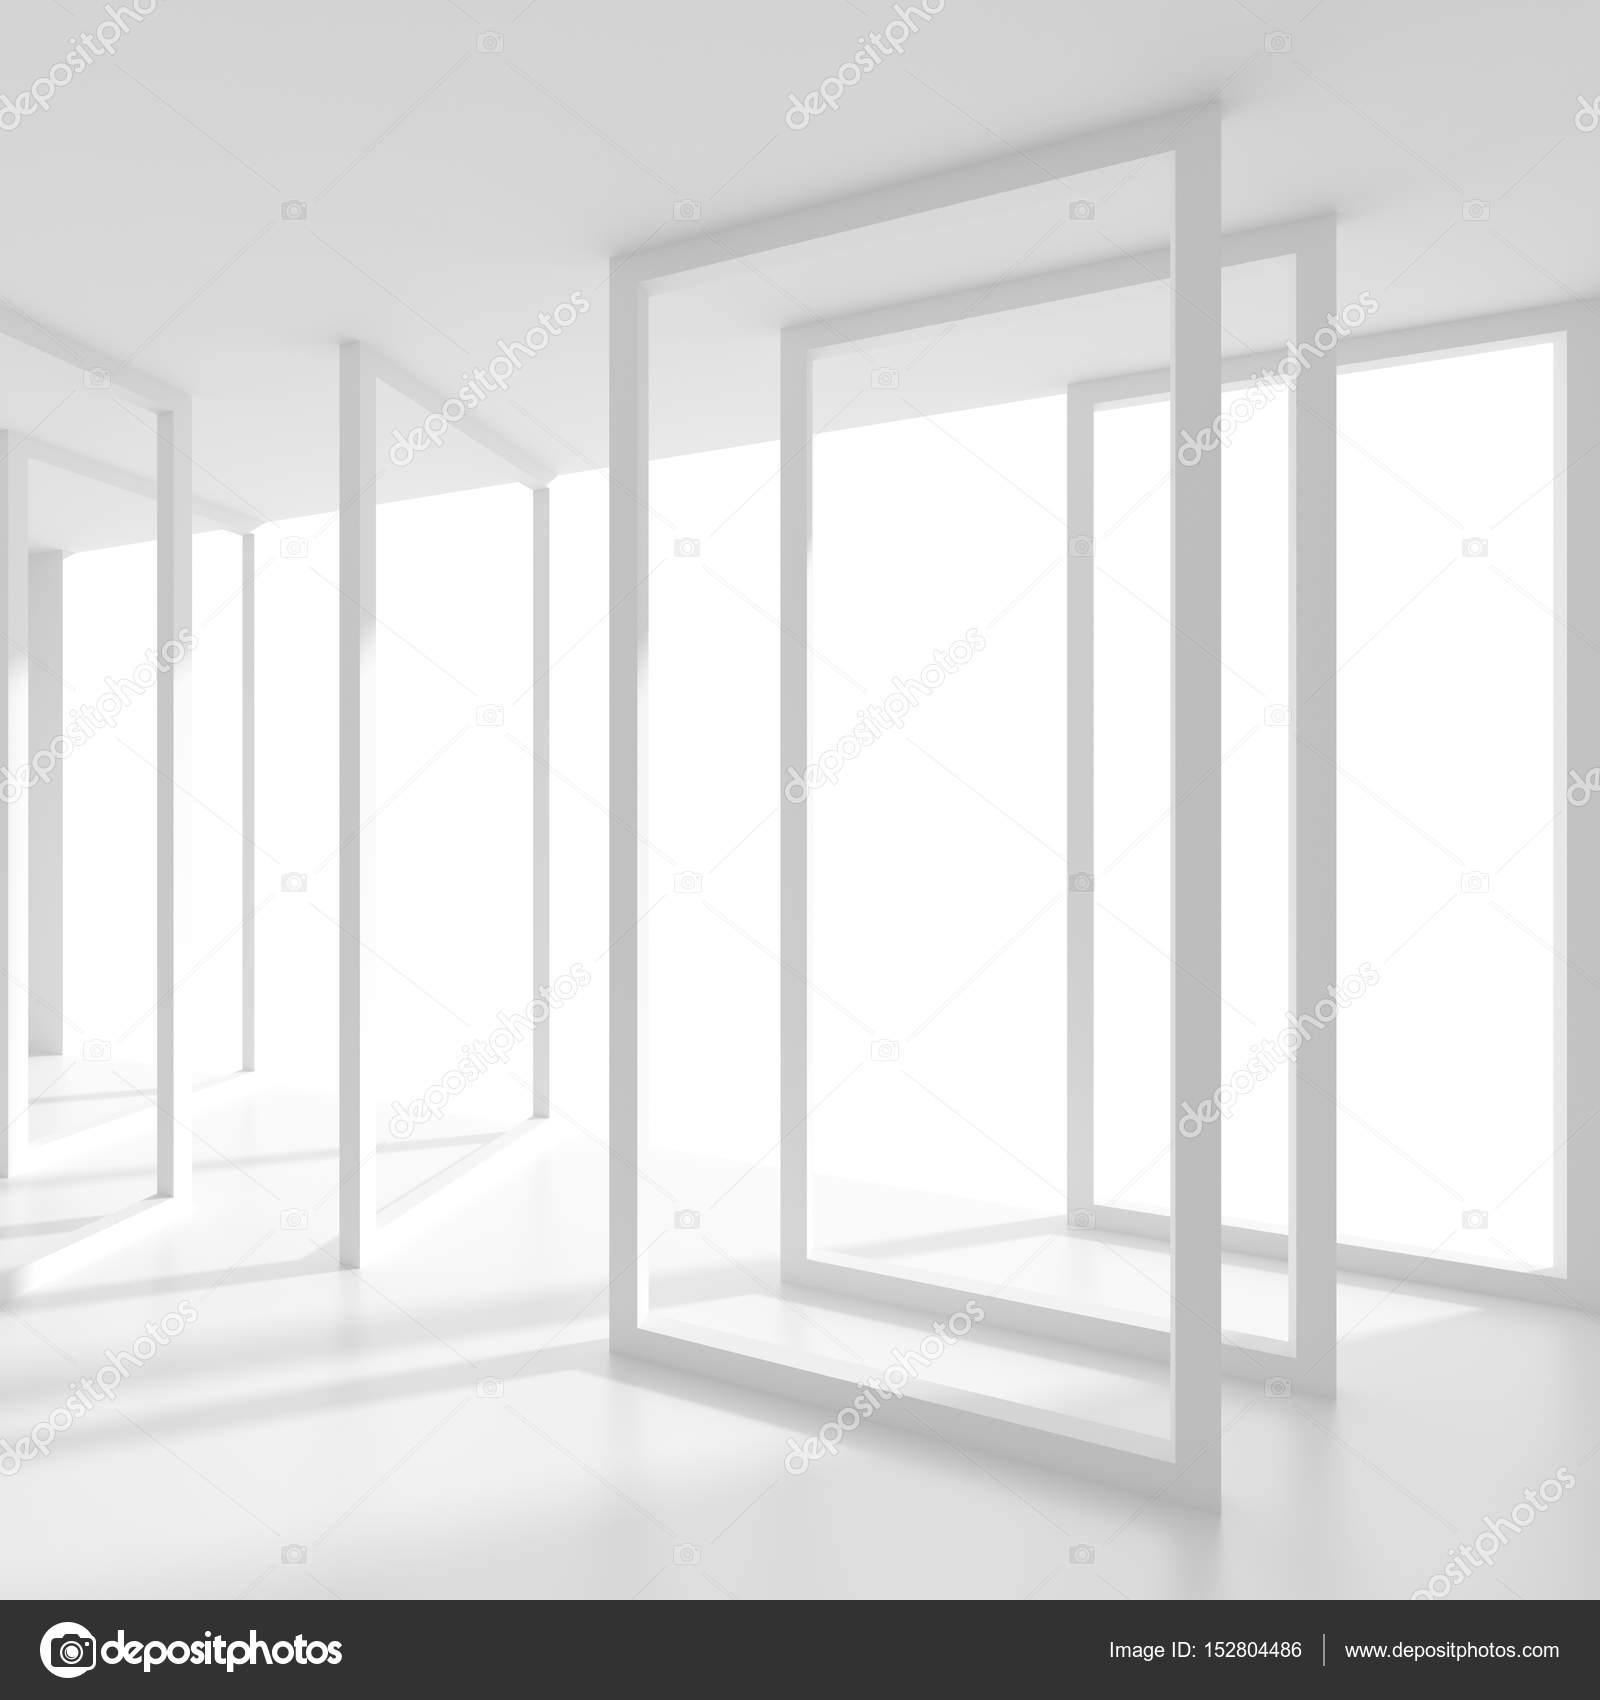 minimal office. Abstract Futuristic Architecture Background. Minimal Office Interior Design. Empty Room With Window. Geometric Shapes Structure \u2014 Photo By Maxkrasnov I